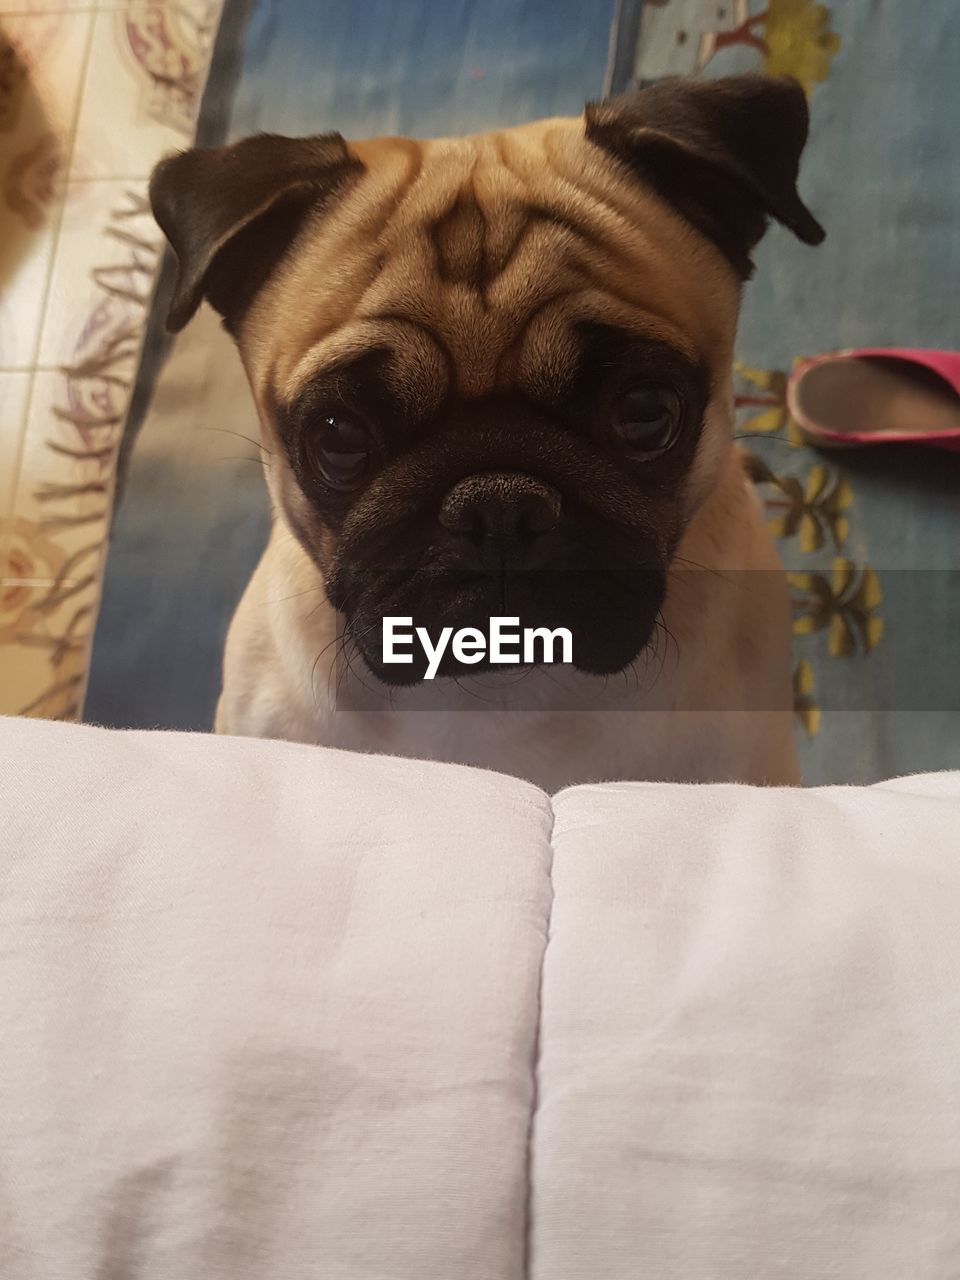 mammal, pets, domestic animals, domestic, one animal, canine, dog, vertebrate, portrait, no people, indoors, looking at camera, close-up, furniture, focus on foreground, pug, home interior, small, whisker